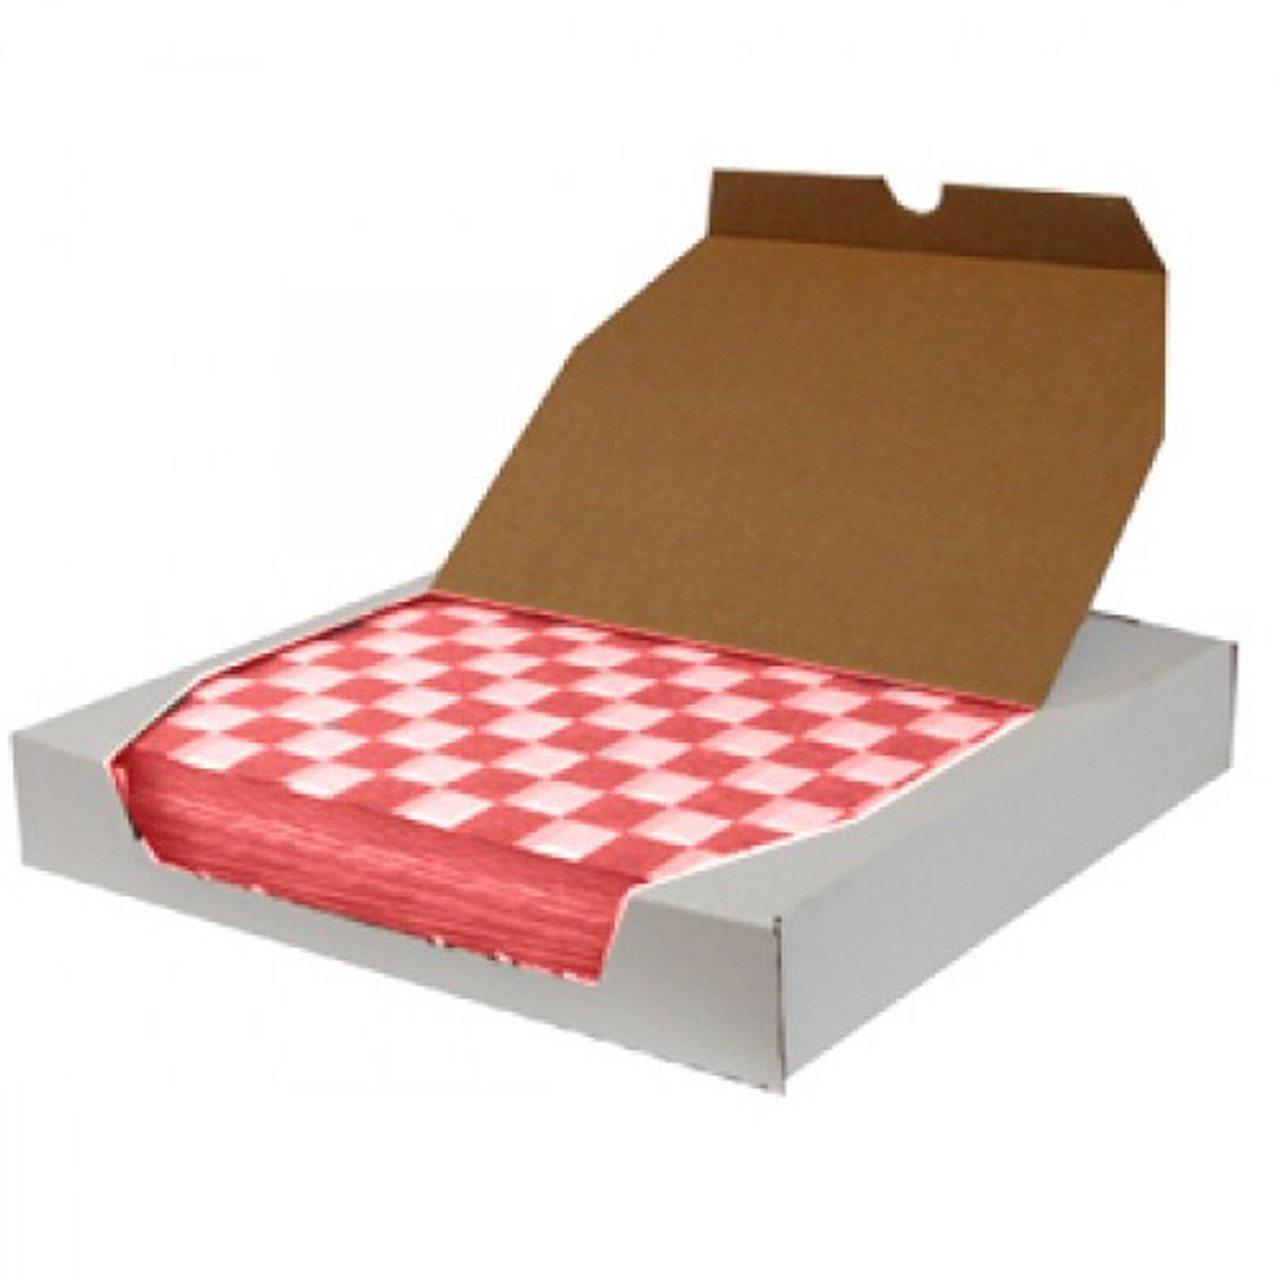 12 x 12 Basket Liners - Case of 2000